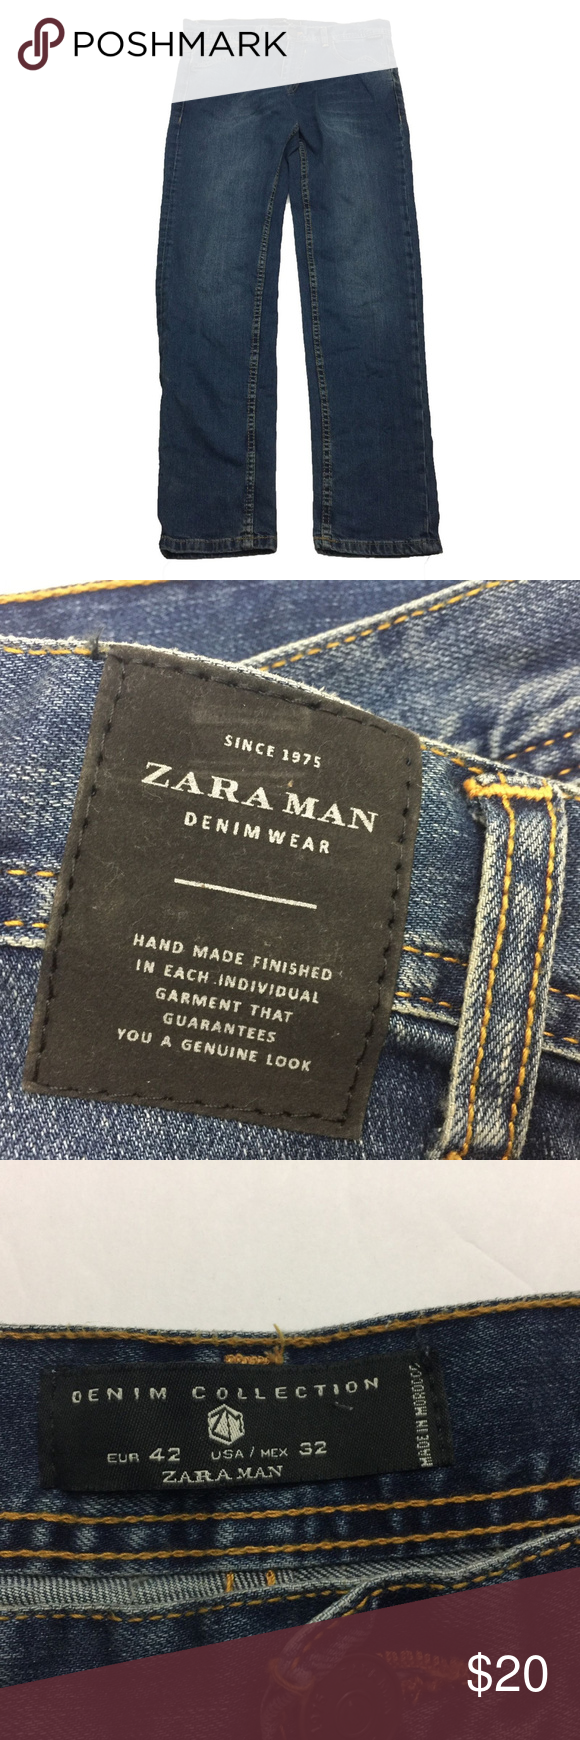 e8010178 Zara Man Denim Collection Skinny Jeans Size 32 Zara Man Denim Collection Men's  Skinny Denim Jeans